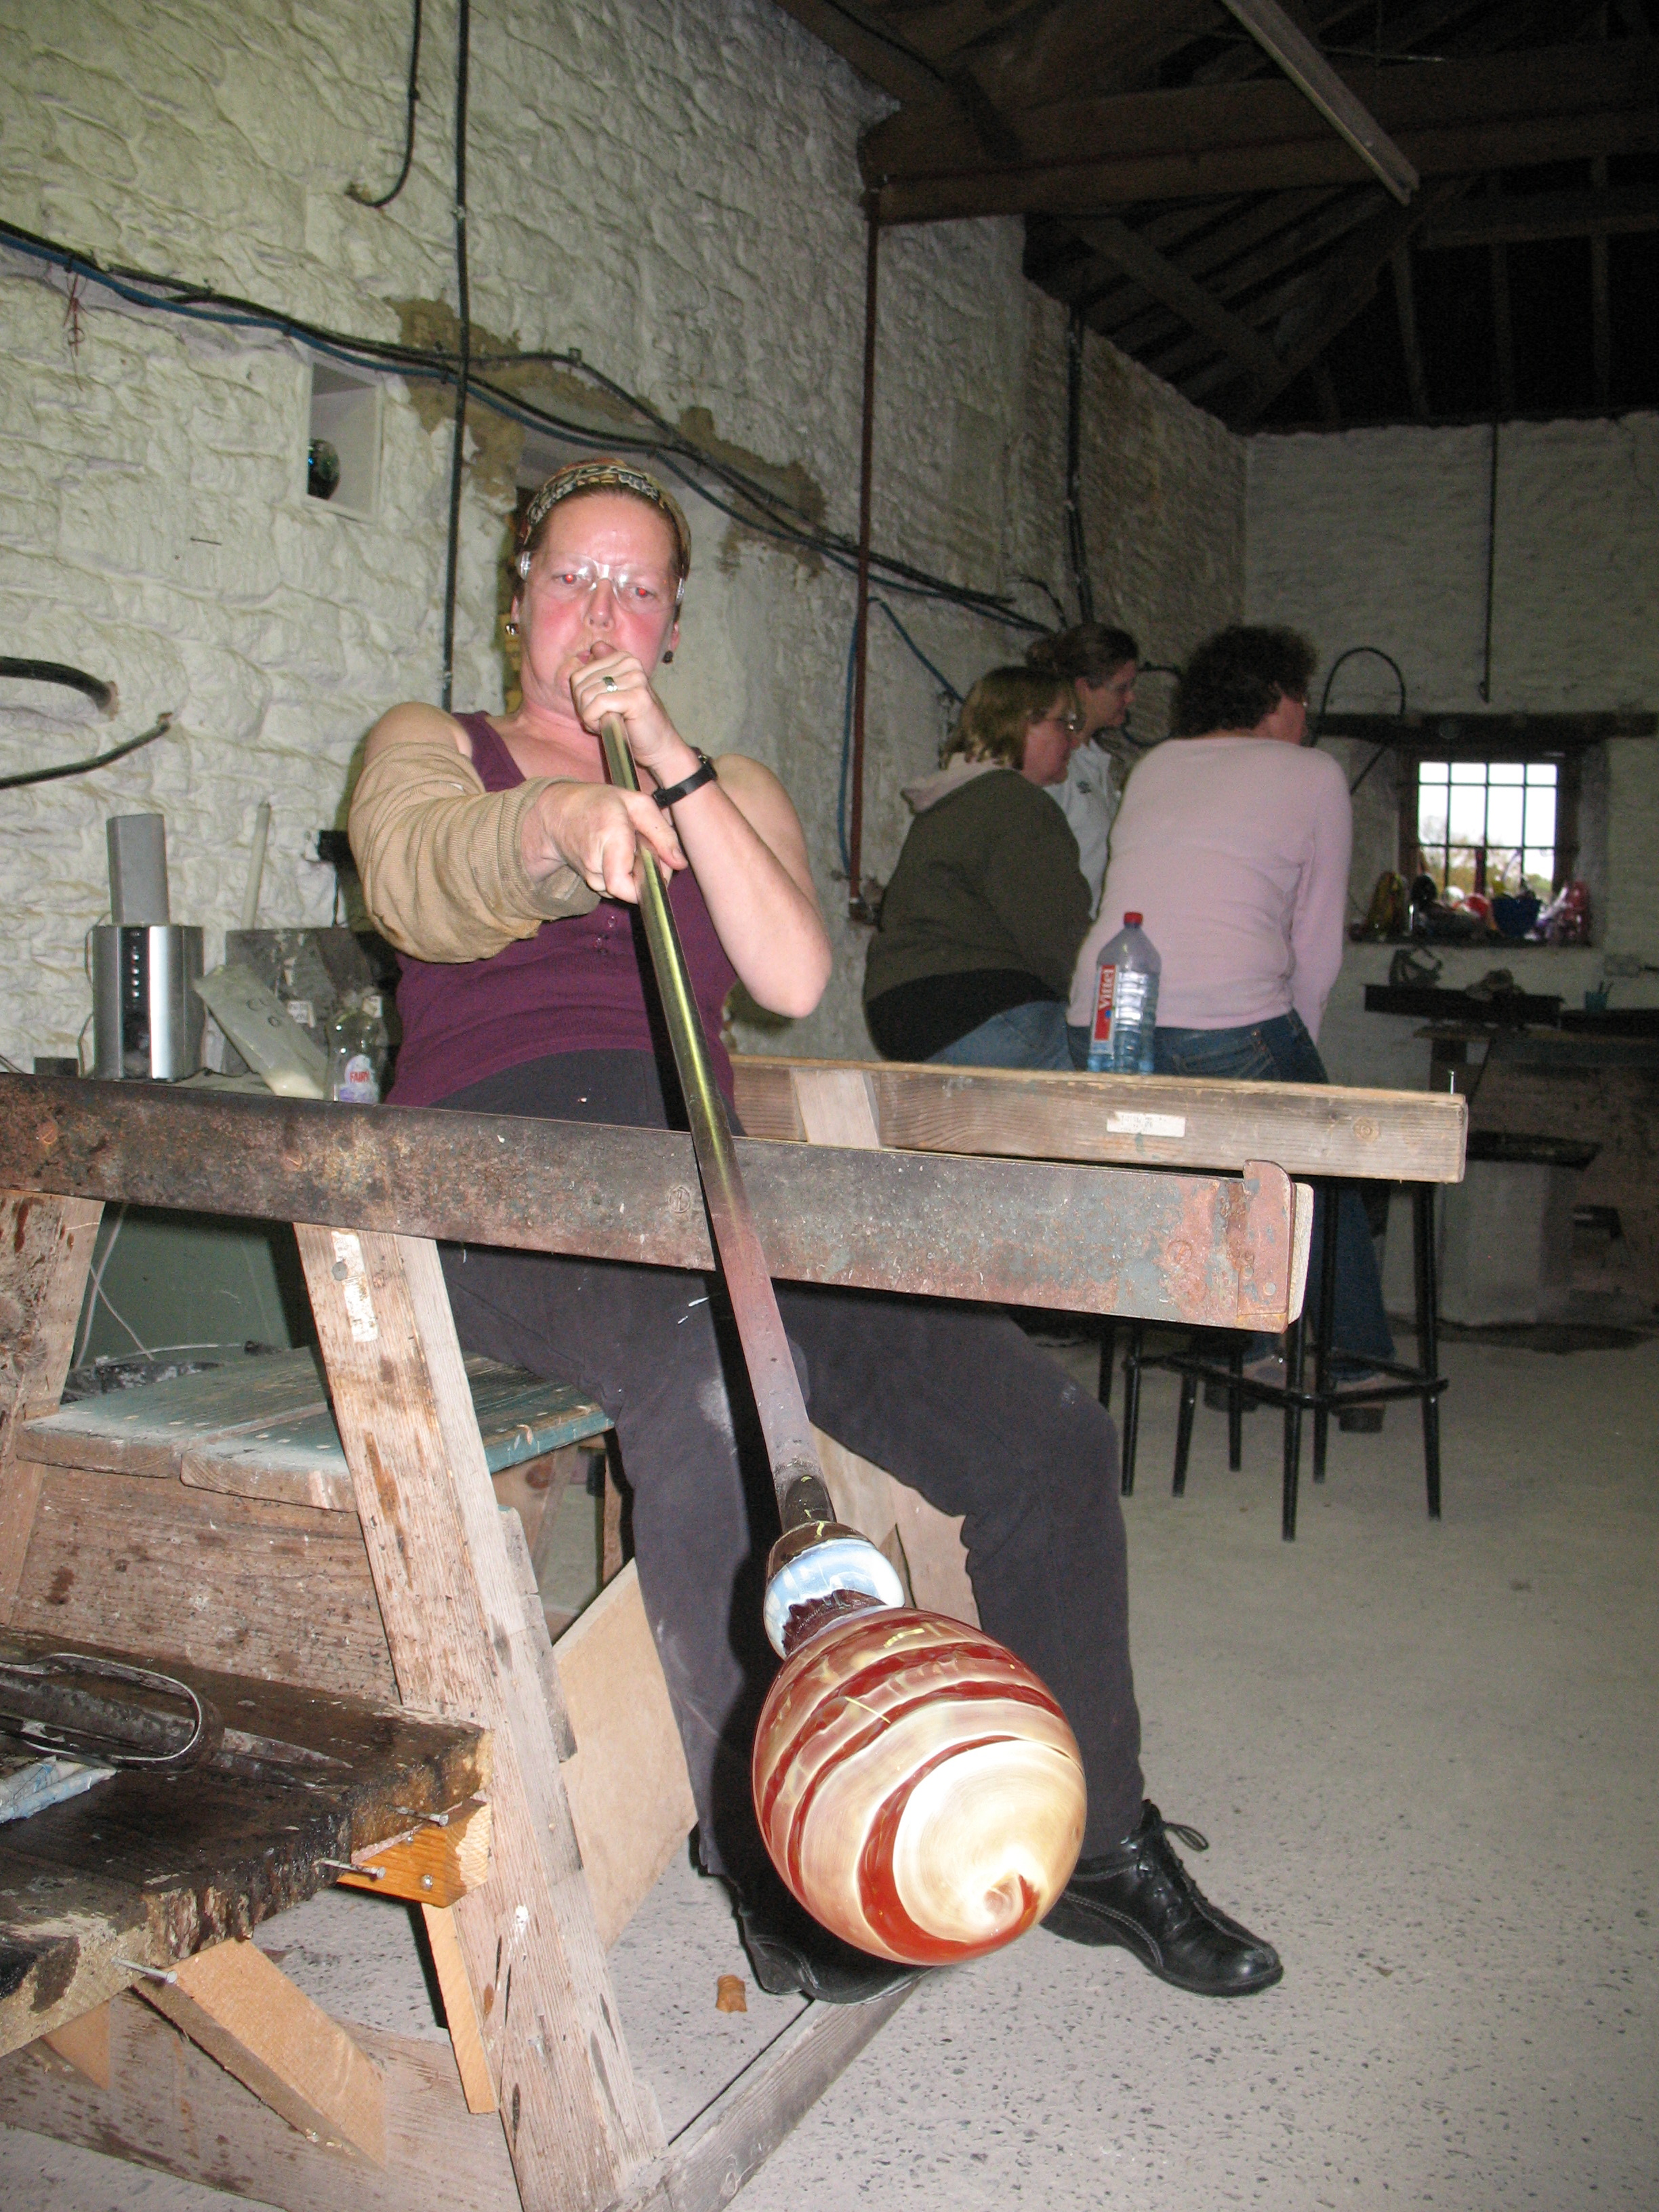 Glass blowing at Liquid Glass Centre in Bradford on Avon.